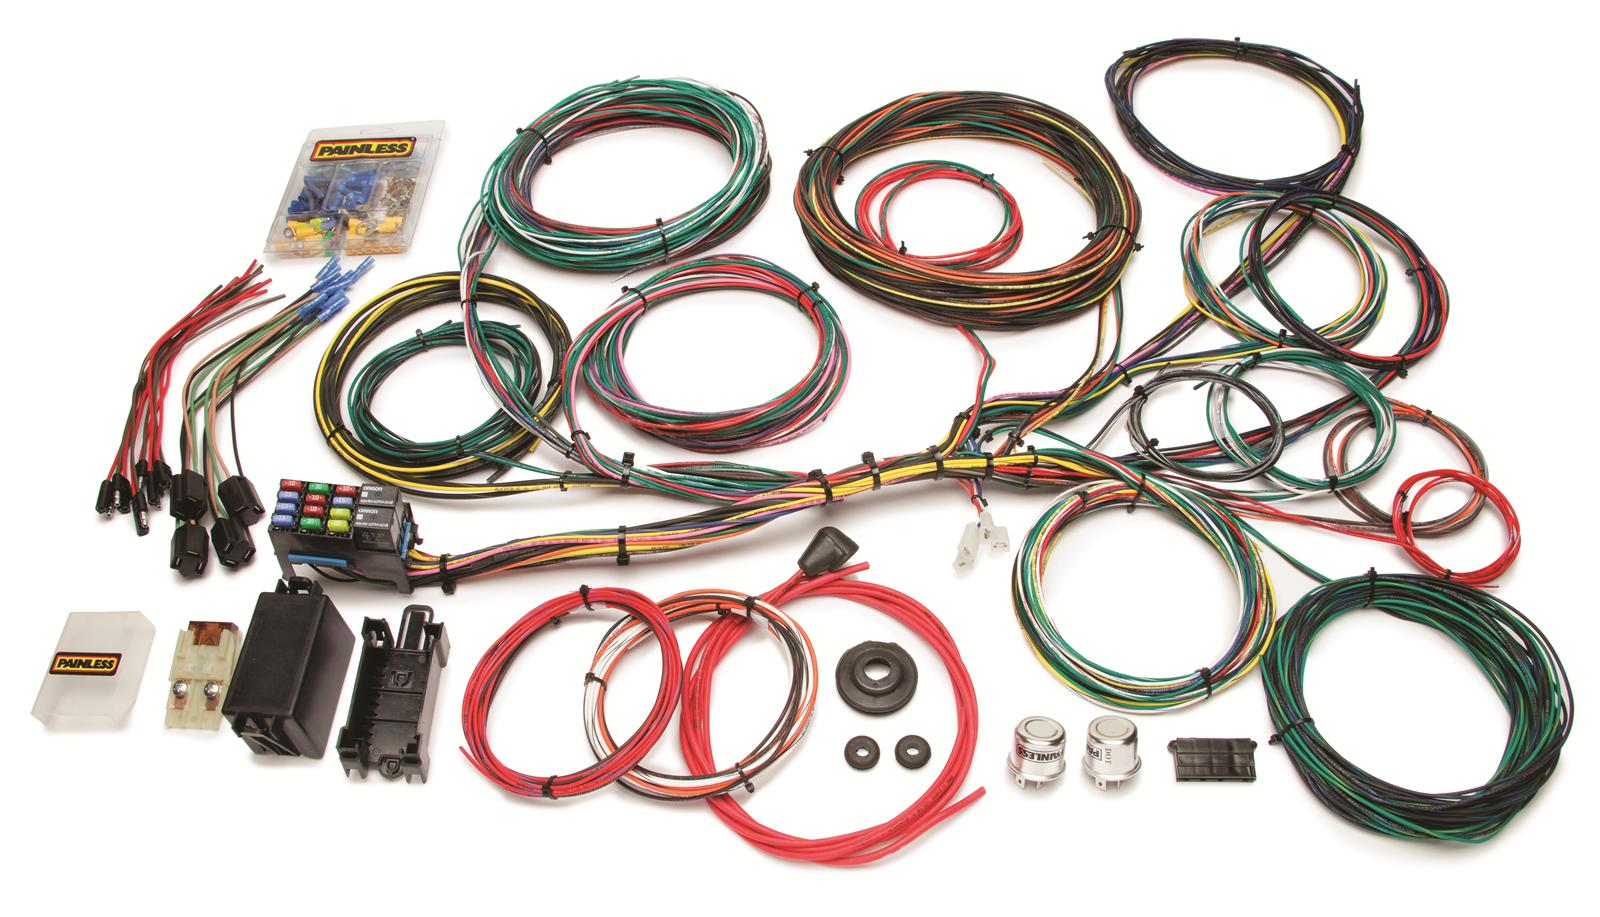 Painless Wiring Harness Diagram Will Be A Thing Dodge Performance 21 Circuit Ford Color Coded Universal Harnesses Rh Summitracing Com 10127